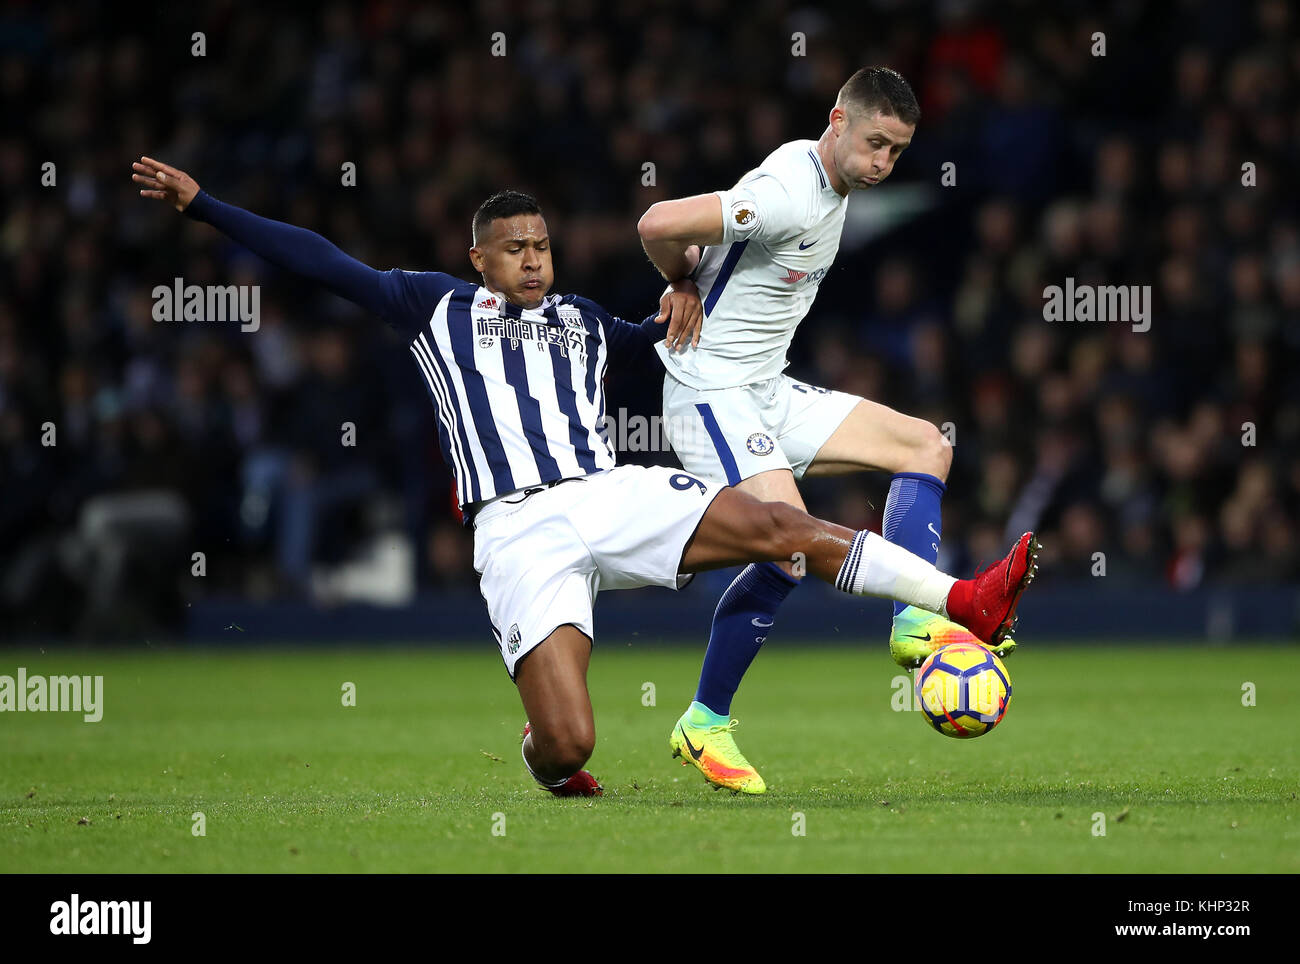 8537cc3b5983 West Bromwich Albion s Salomon Rondon (left) and Chelsea s Gary Cahill  (right) battle for the ball during the Premier League match at The  Hawthorns